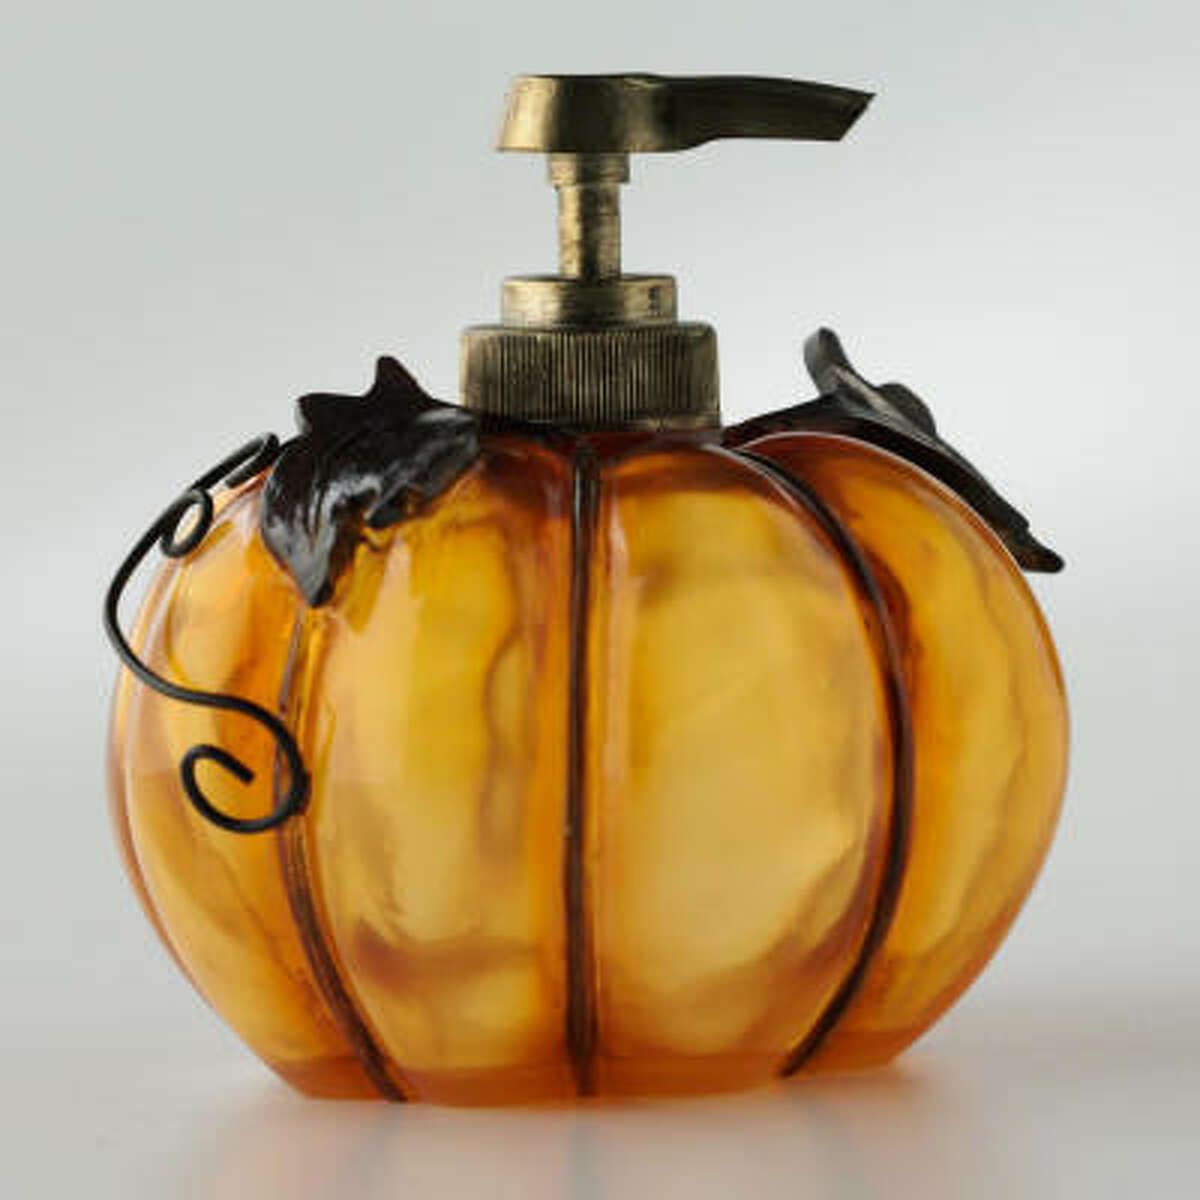 Pumpkin Lotion Pump, $12.99, at select Kohl's and kohls.com.